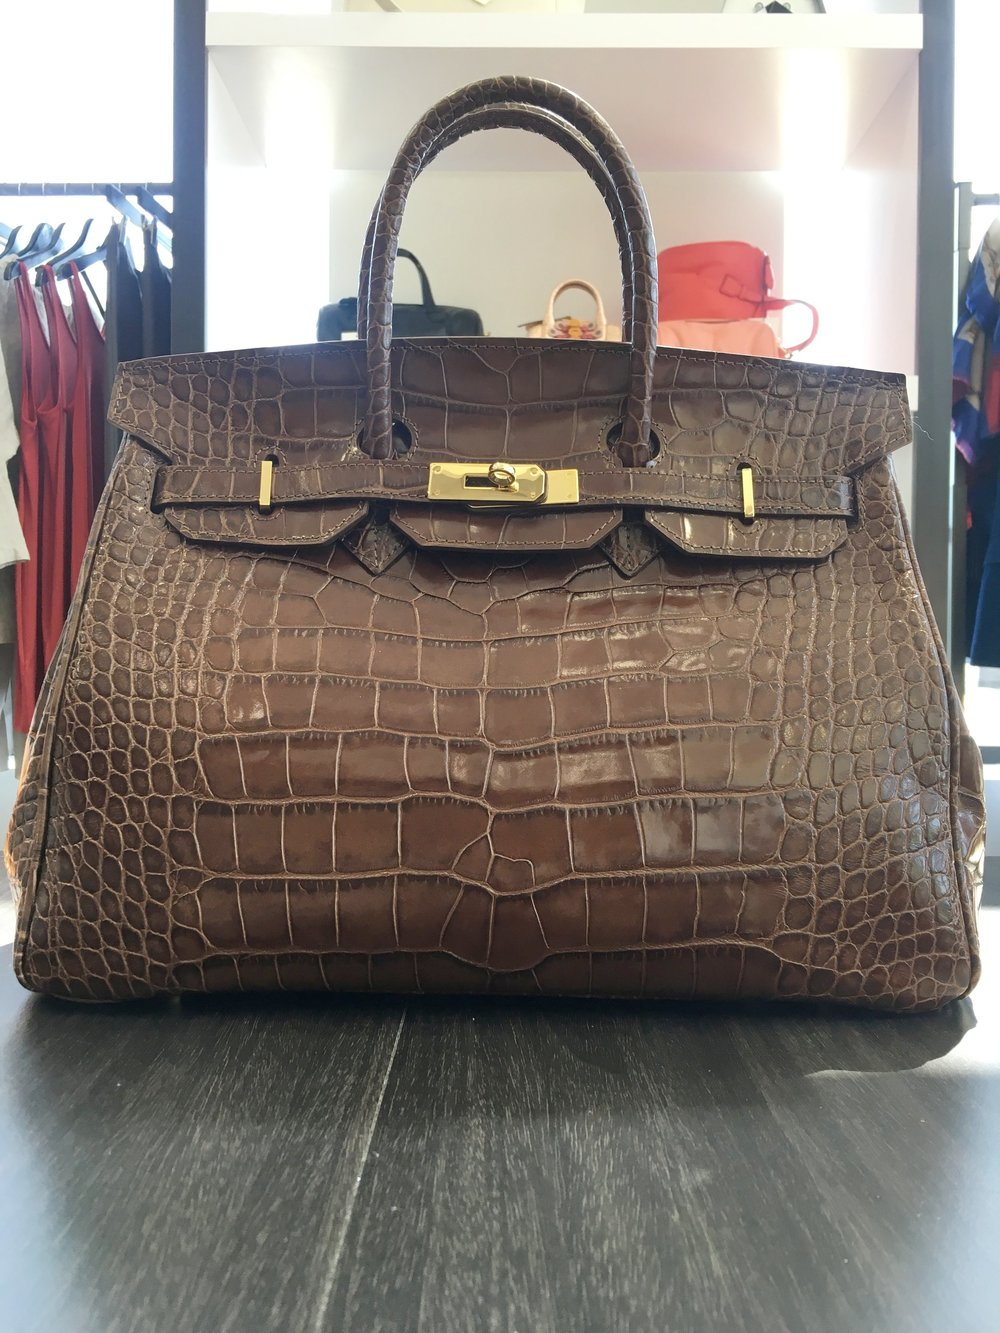 Caty 35cm in Brown Croc -$790